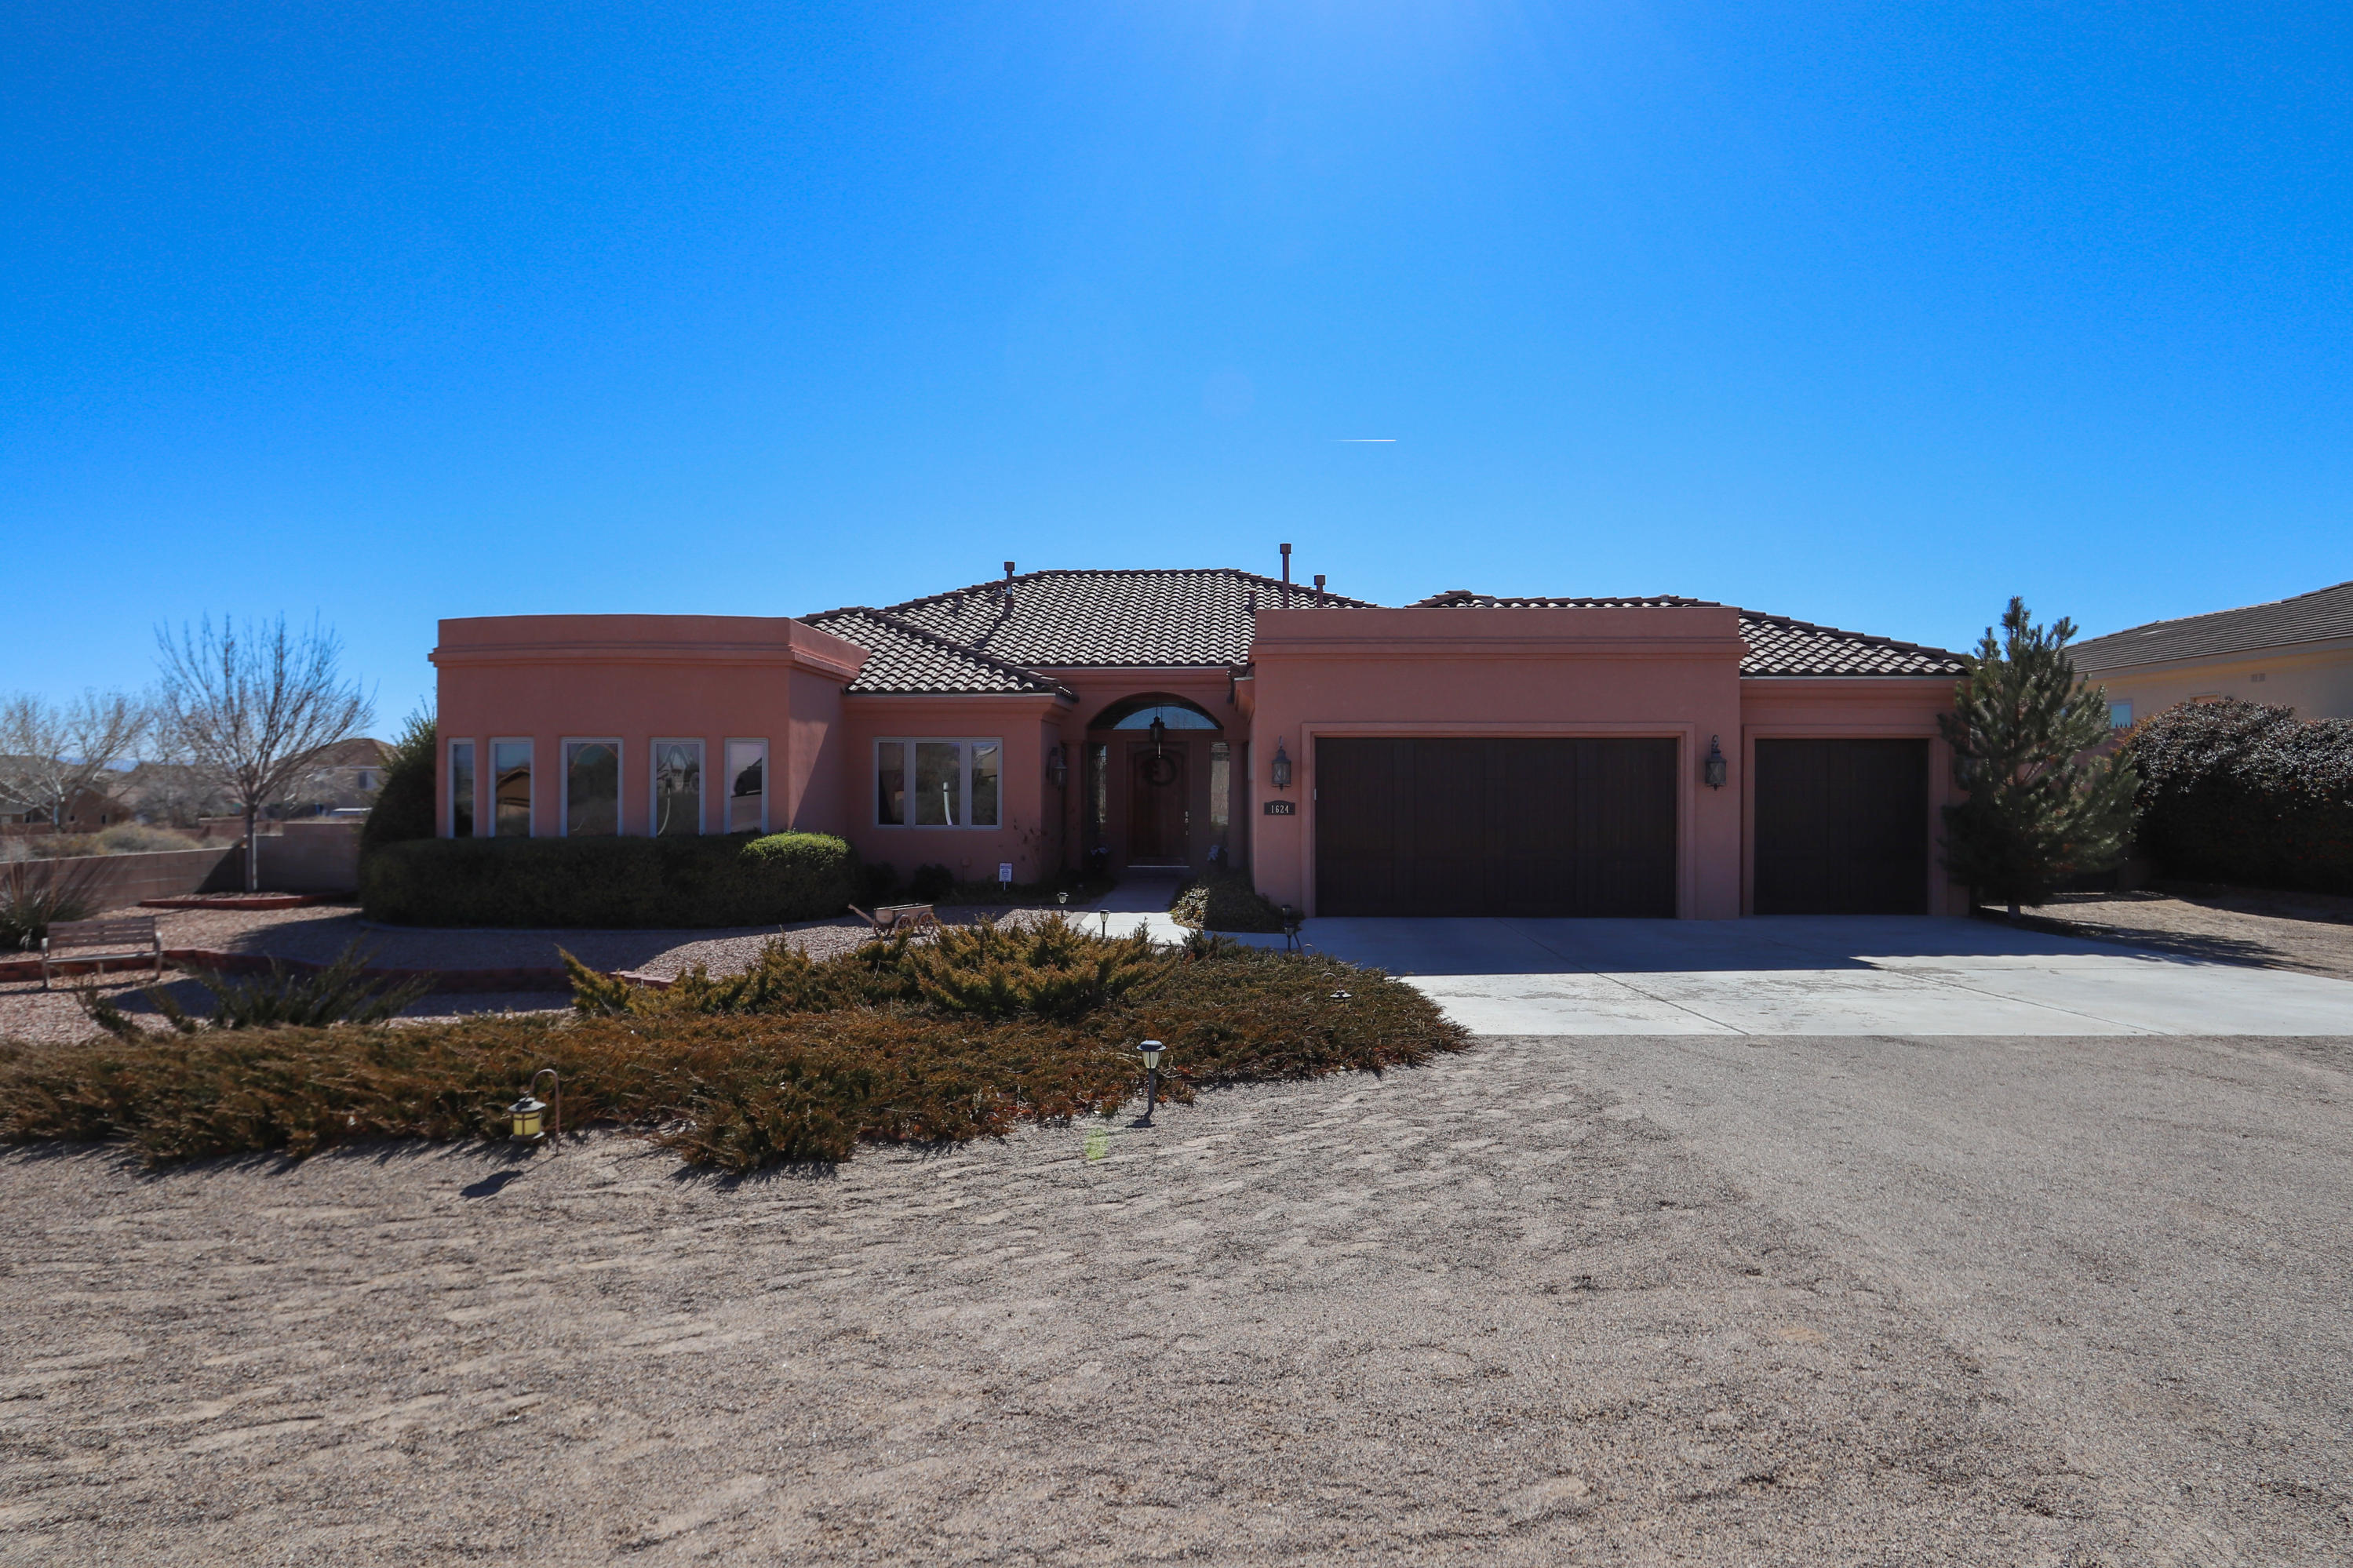 1624 SE 23rd Avenue, Rio Rancho, New Mexico